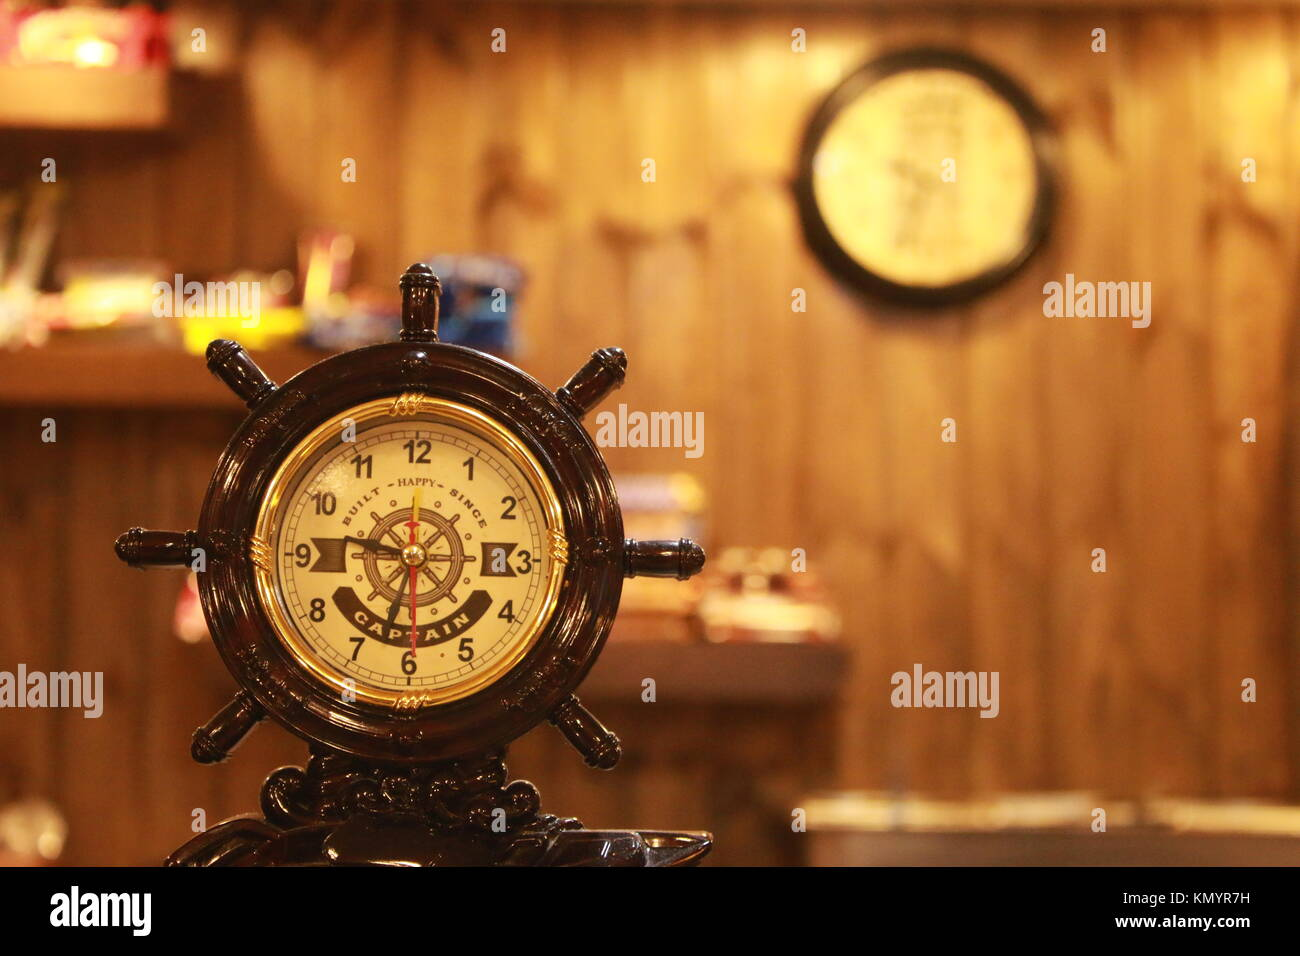 history historic back ground time freeze moment minute hour clock compass time worn classic - Stock Image